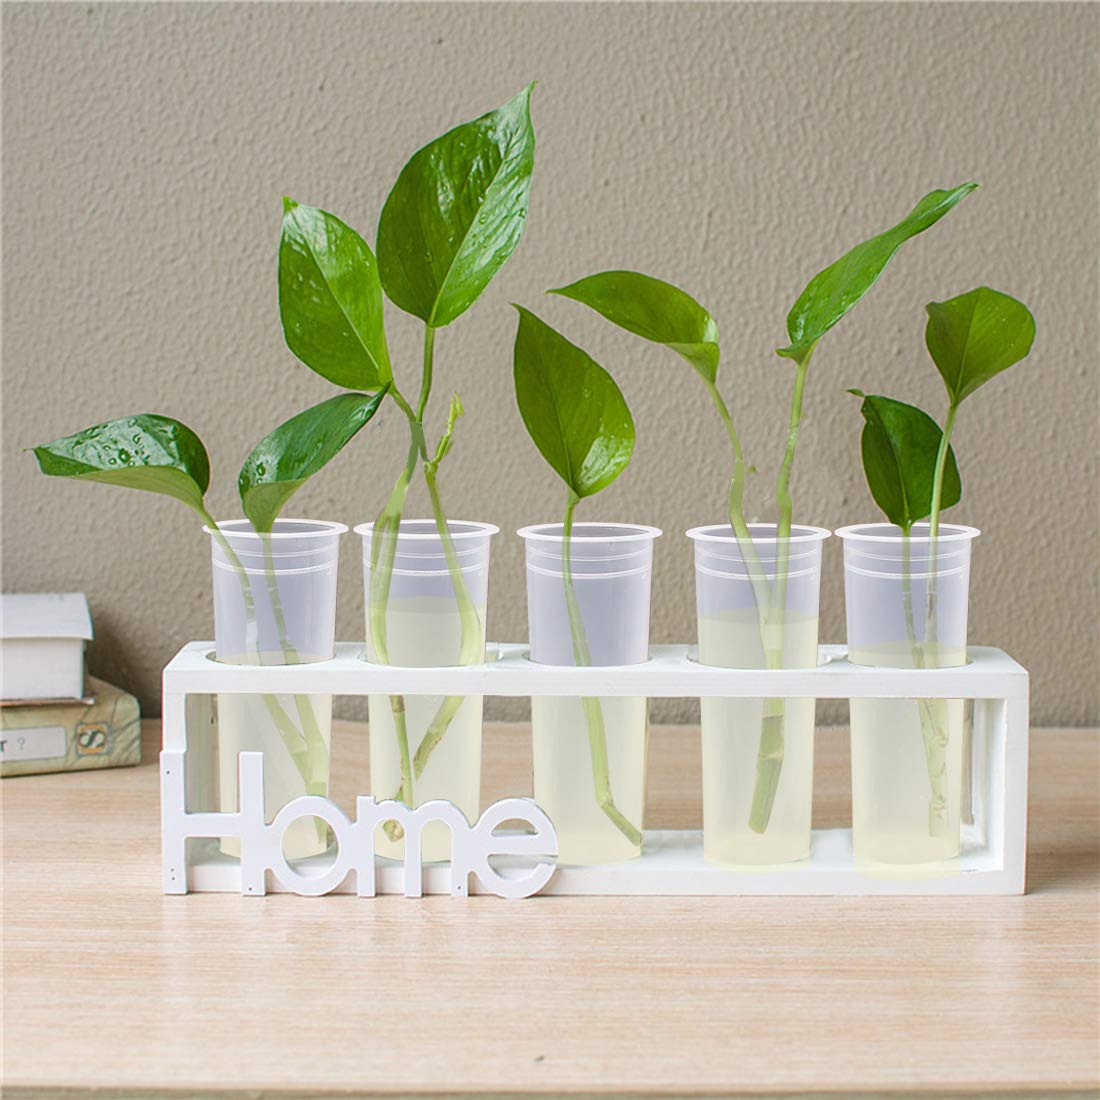 21 Pack Floral Water Tubes with Rack Holder Flower Vials Water Container for Flower Arrangements Milkweed Cuttings